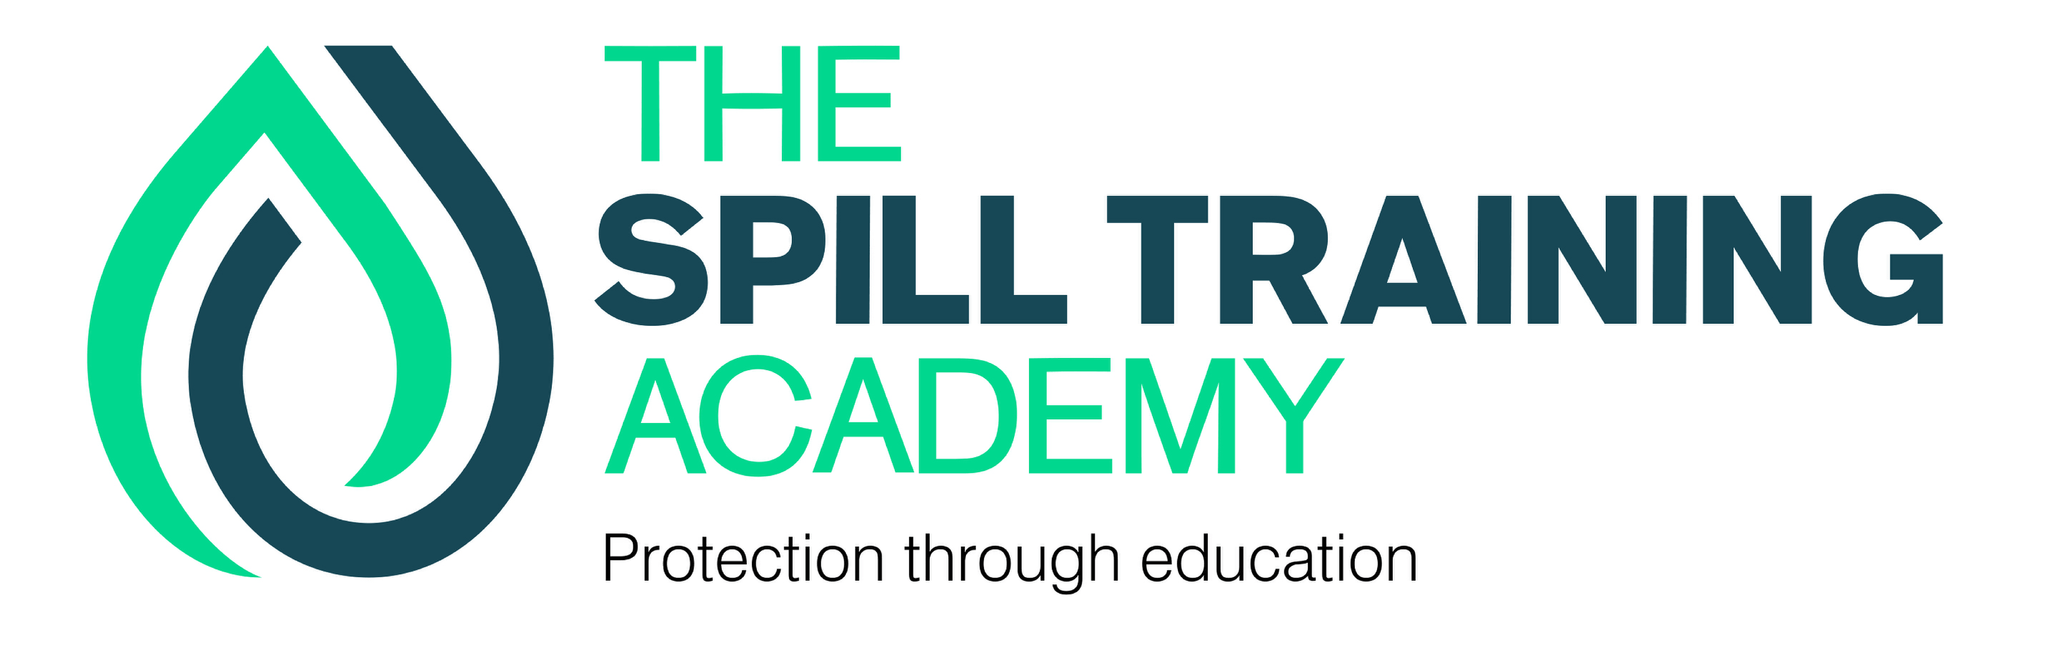 The Spill Training Academy